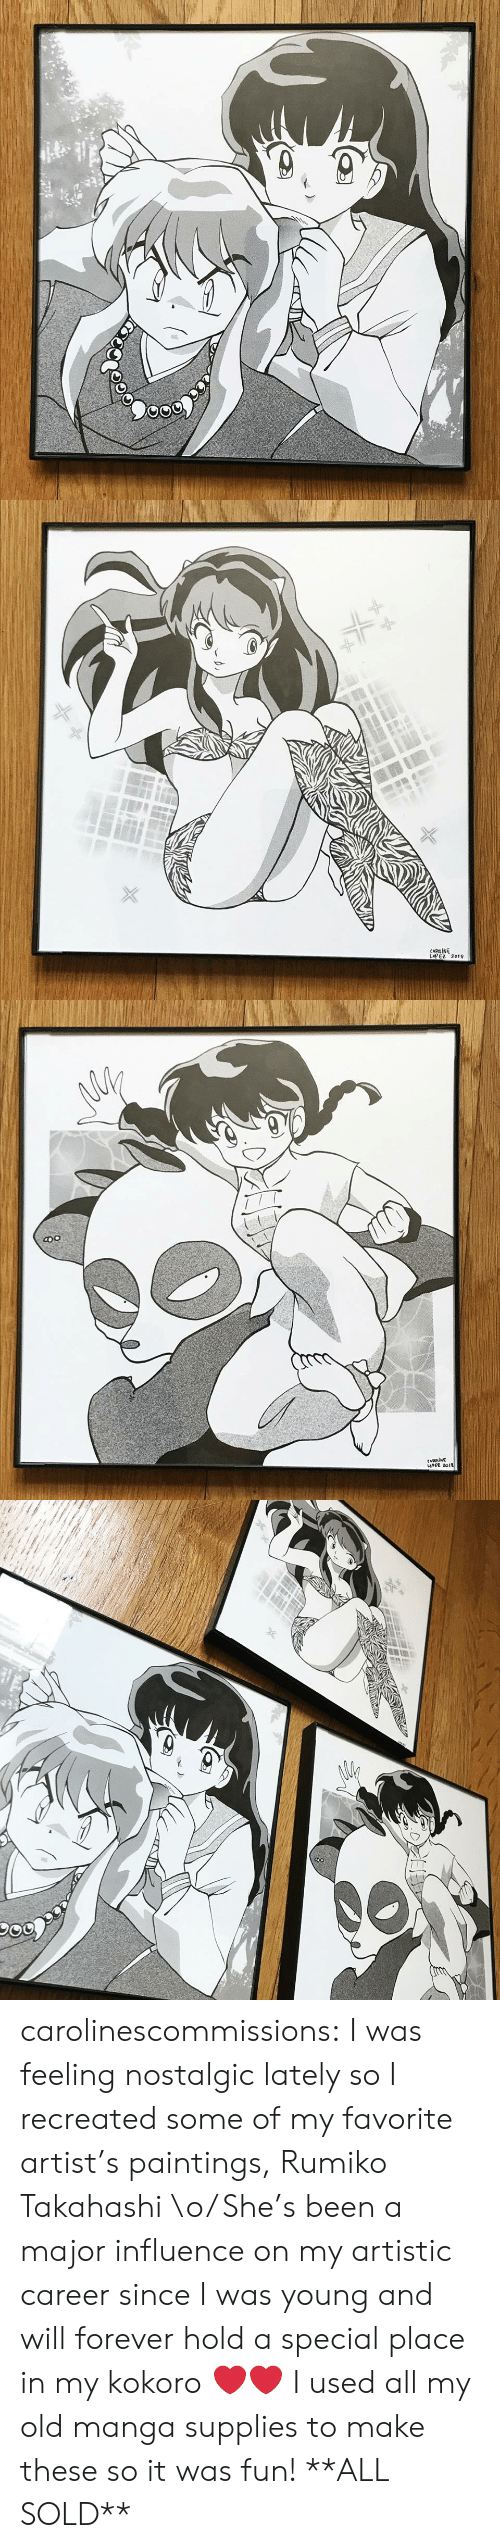 influence: CAROLINE  LoPE2 201 carolinescommissions: I was feeling nostalgic lately so I recreated some  of my favorite artist's paintings, Rumiko Takahashi \o/ She's been a  major influence on my artistic career since I was young and will forever  hold a special place in my kokoro ❤️❤️ I used all my old manga supplies to make these so it was fun! **ALL SOLD**